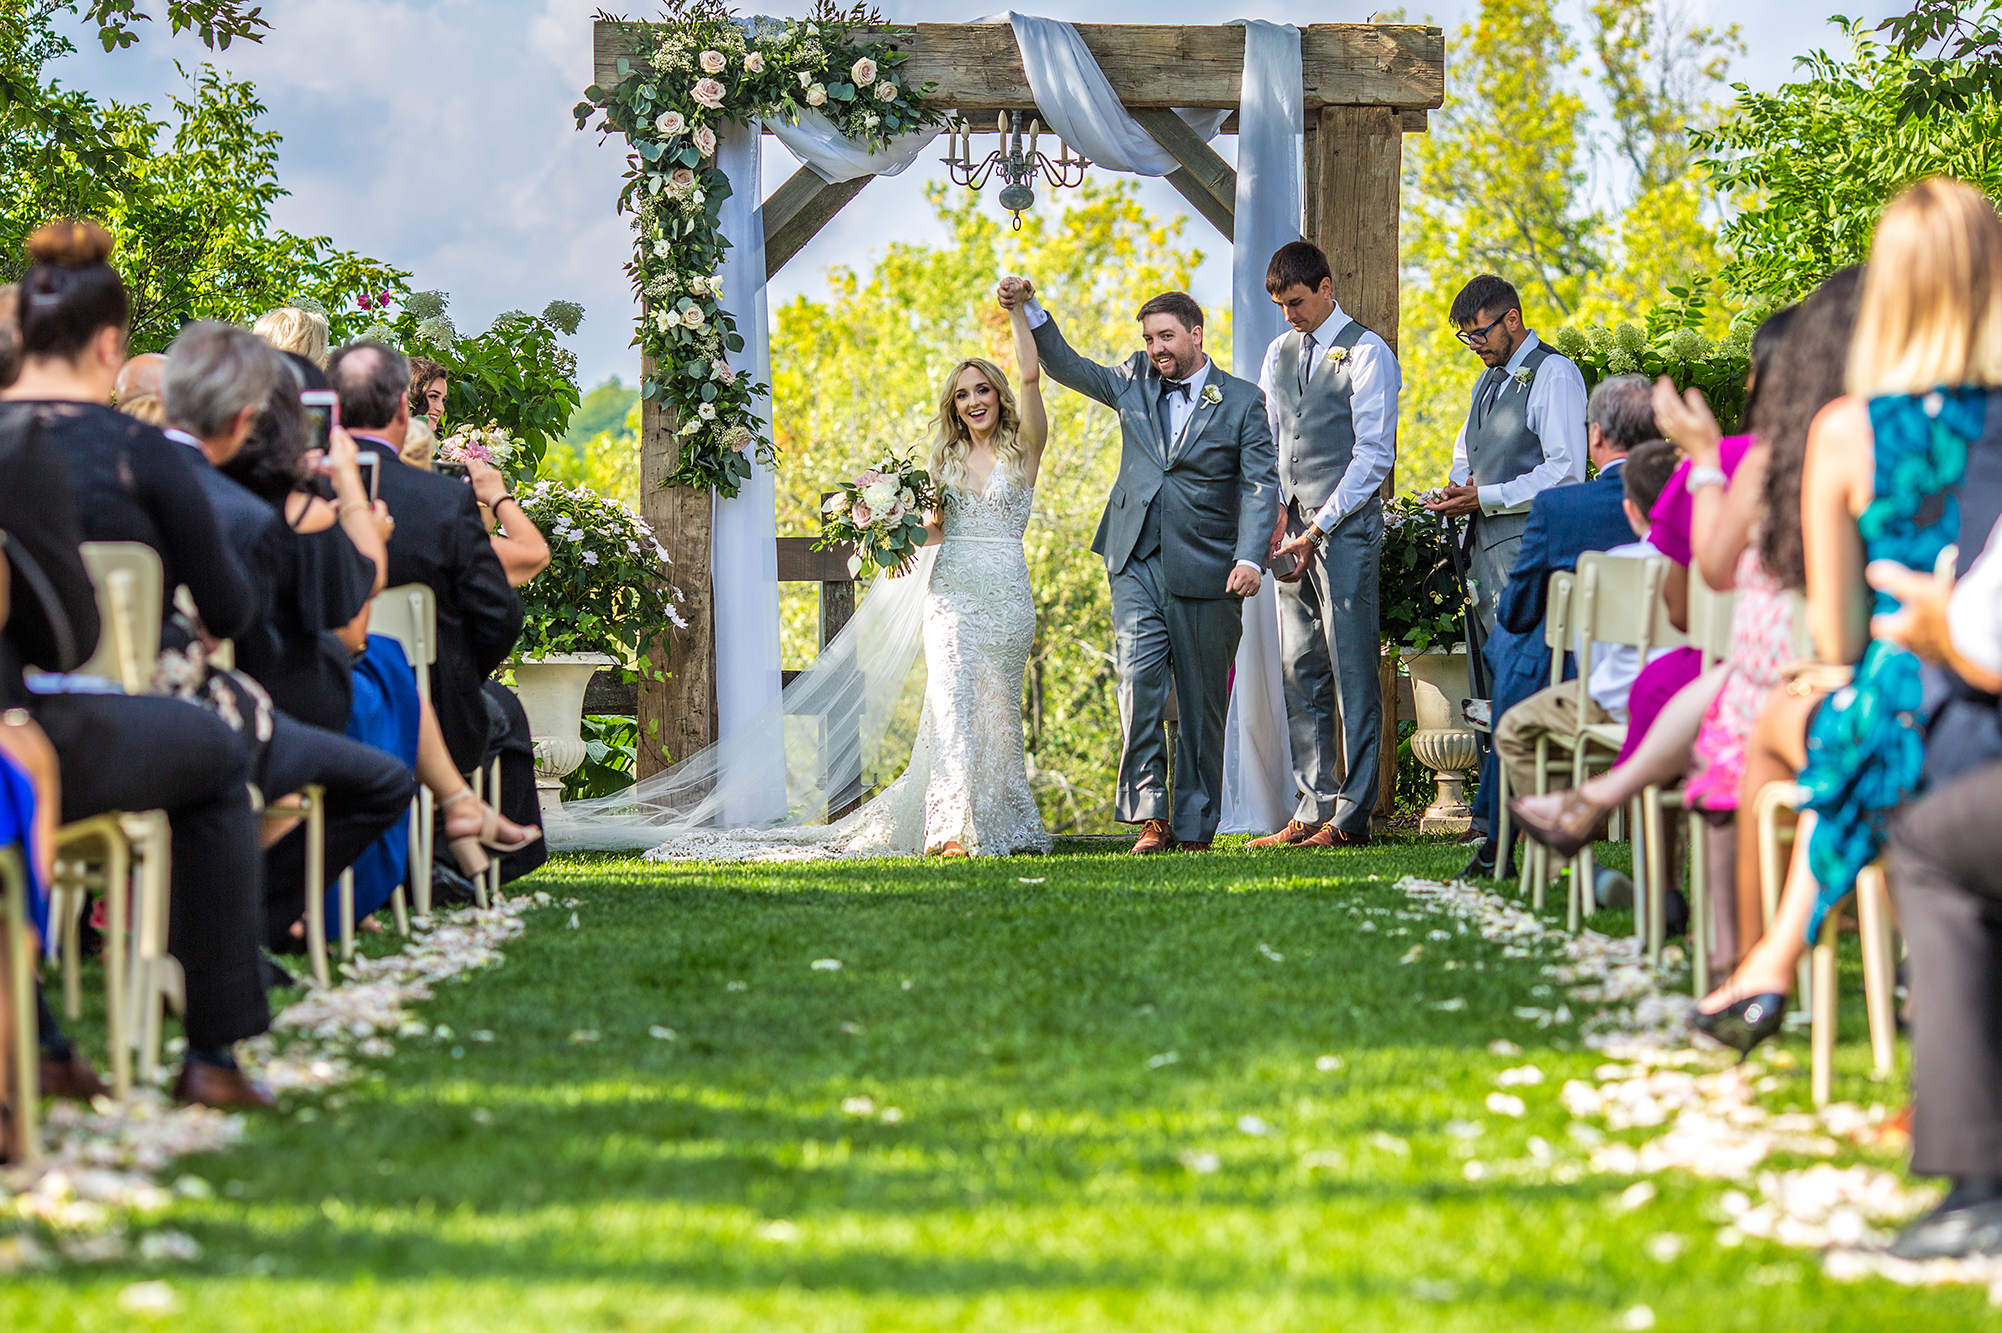 This images shows off our wedding photography skills during a ceremony